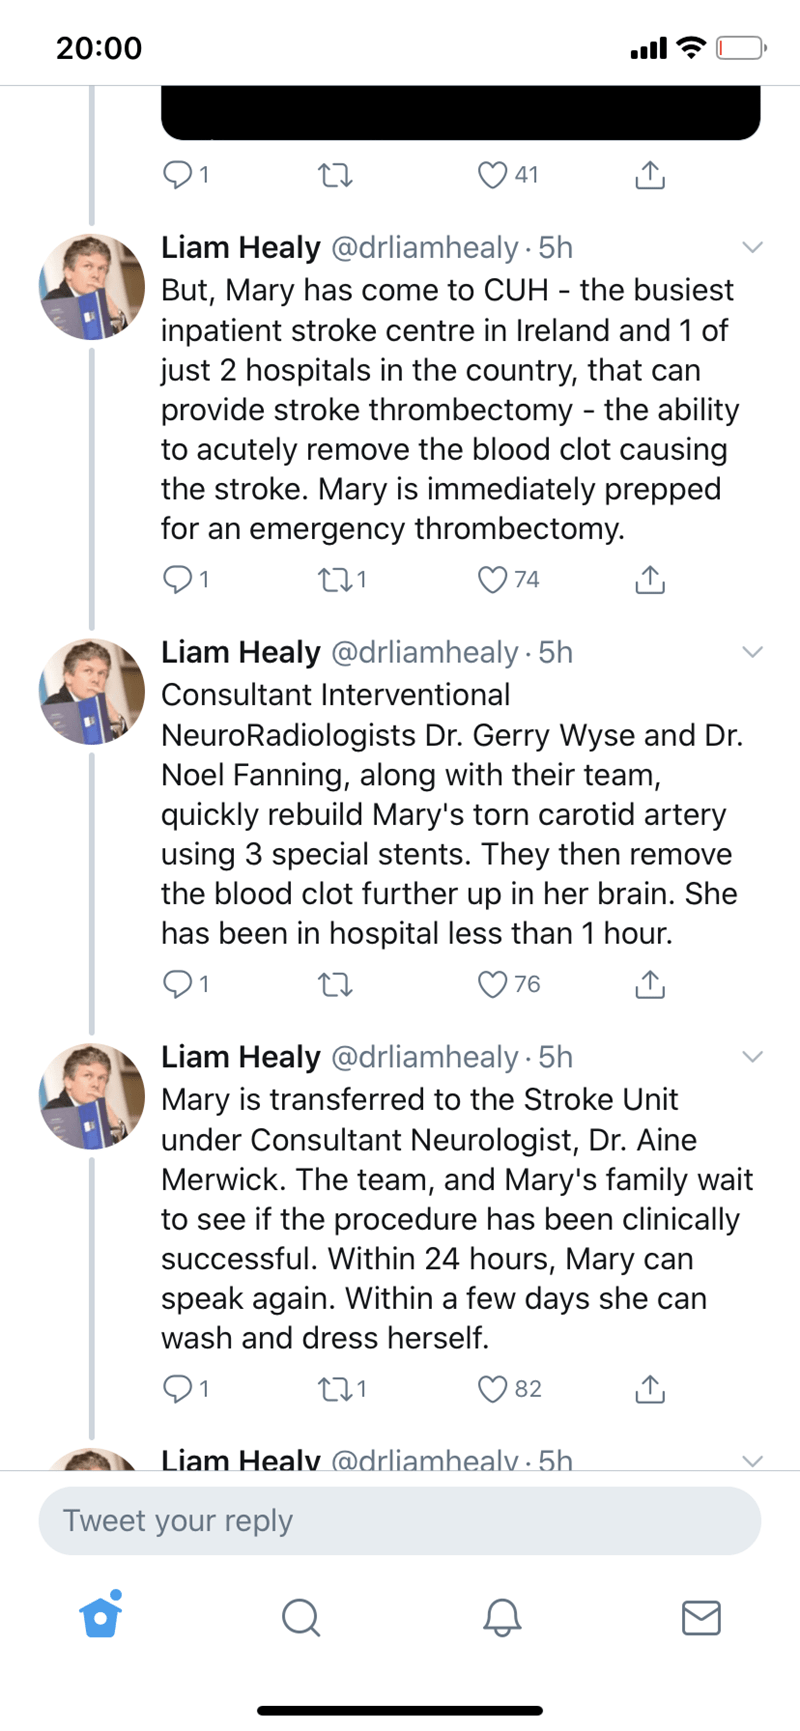 Text - 20:00 ull 1 41 Liam Healy @drliamhealy · 5h But, Mary has come to CUH - the busiest inpatient stroke centre in Ireland and 1 of just 2 hospitals in the country, that can provide stroke thrombectomy - the ability to acutely remove the blood clot causing the stroke. Mary is immediately prepped for an emergency thrombectomy. 01 74 Liam Healy @drliamhealy 5h Consultant Interventional NeuroRadiologists Dr. Gerry Wyse and Dr. Noel Fanning, along with their team, quickly rebuild Mary's torn caro